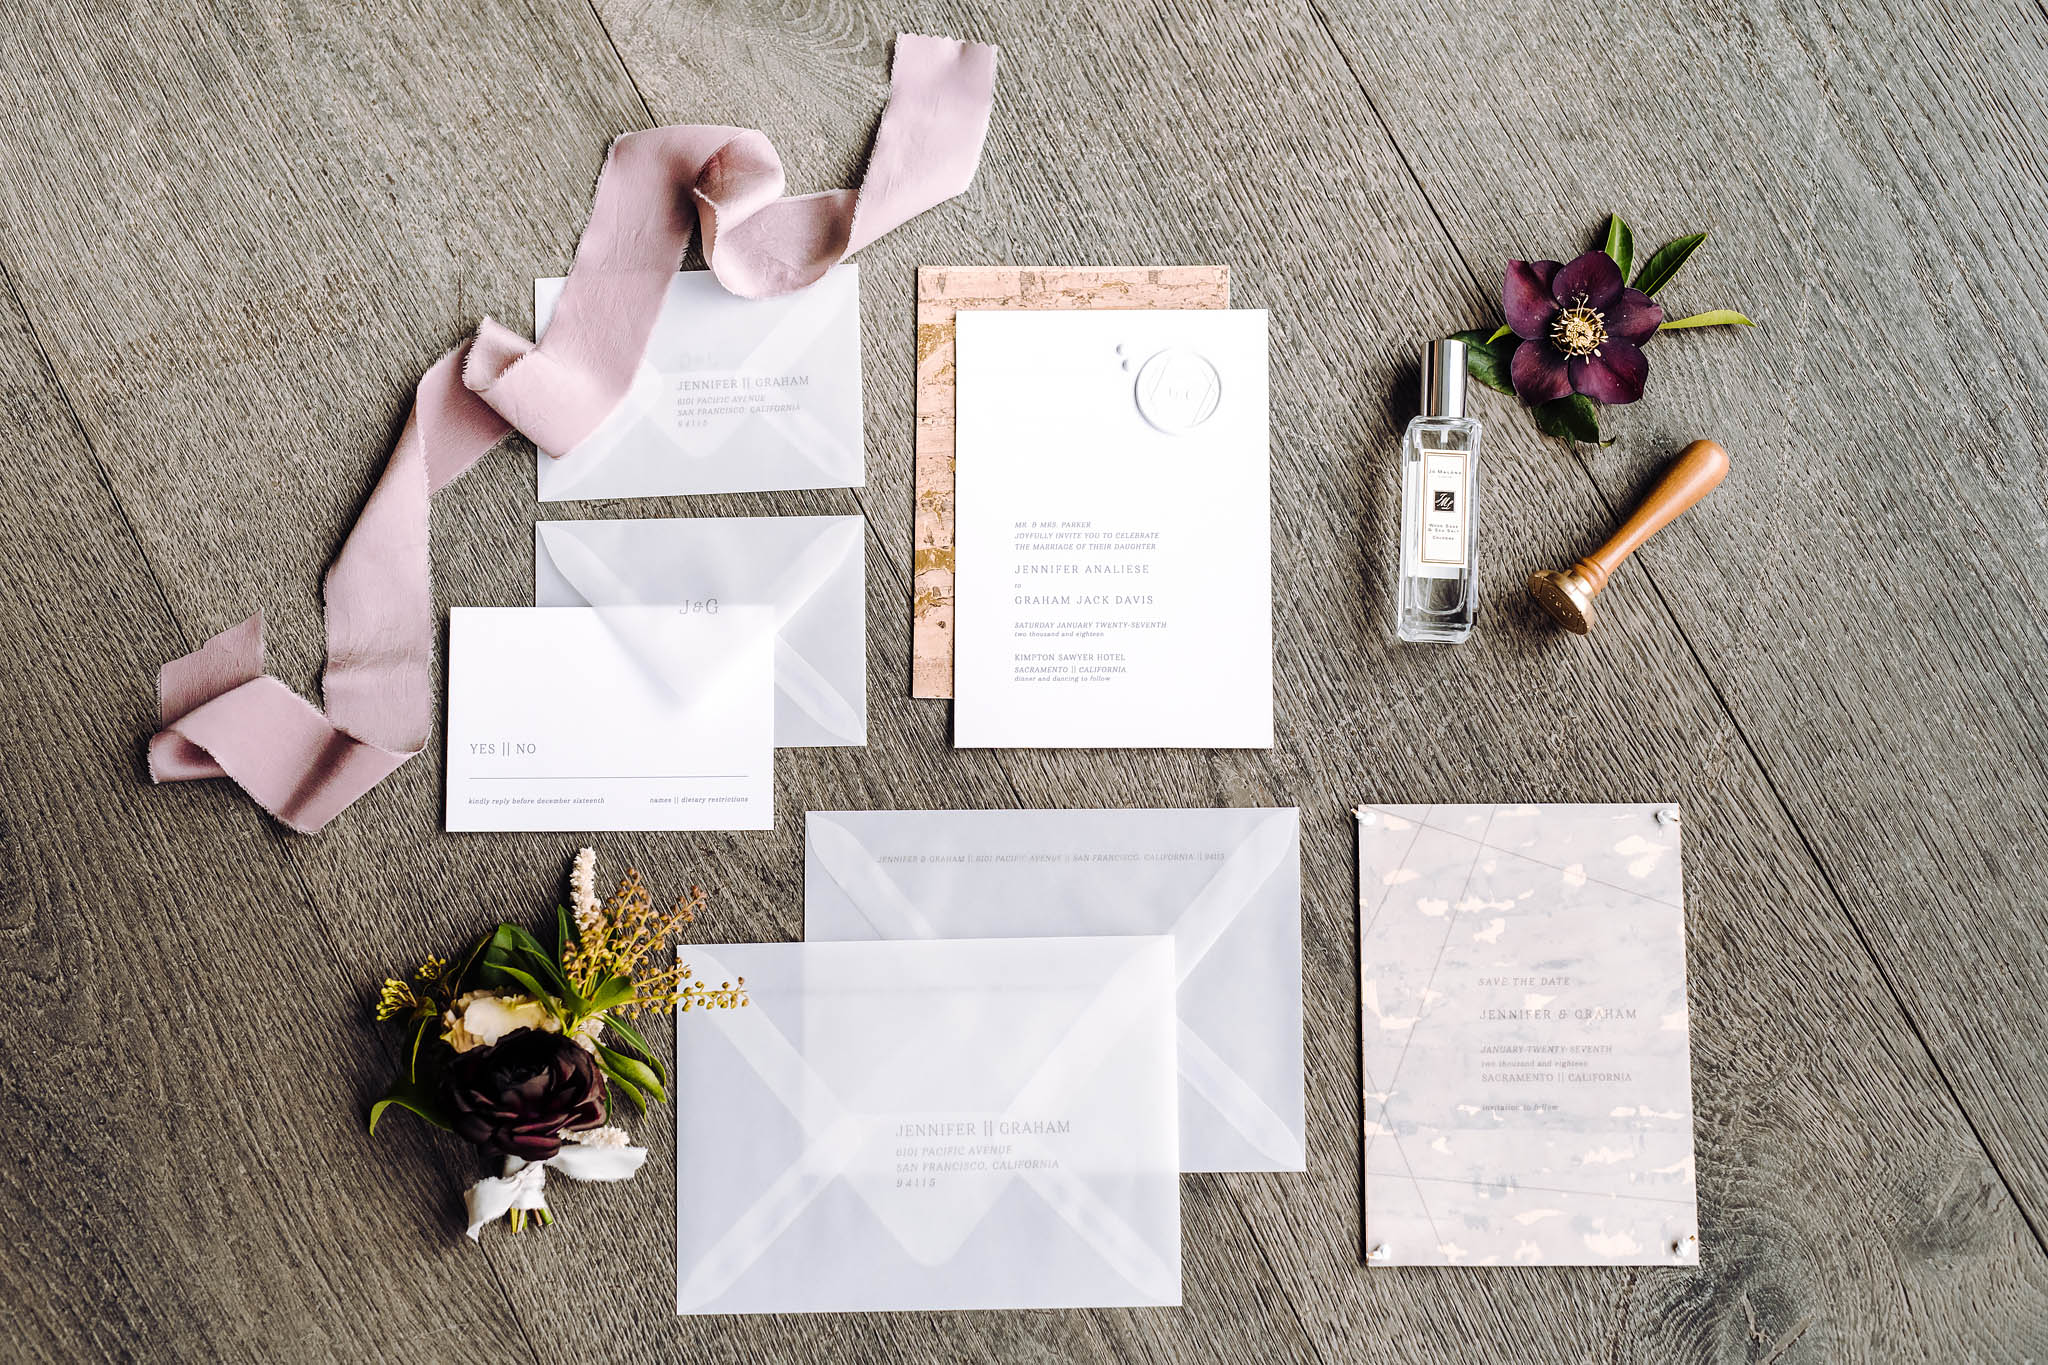 wedding invitations styled for photography